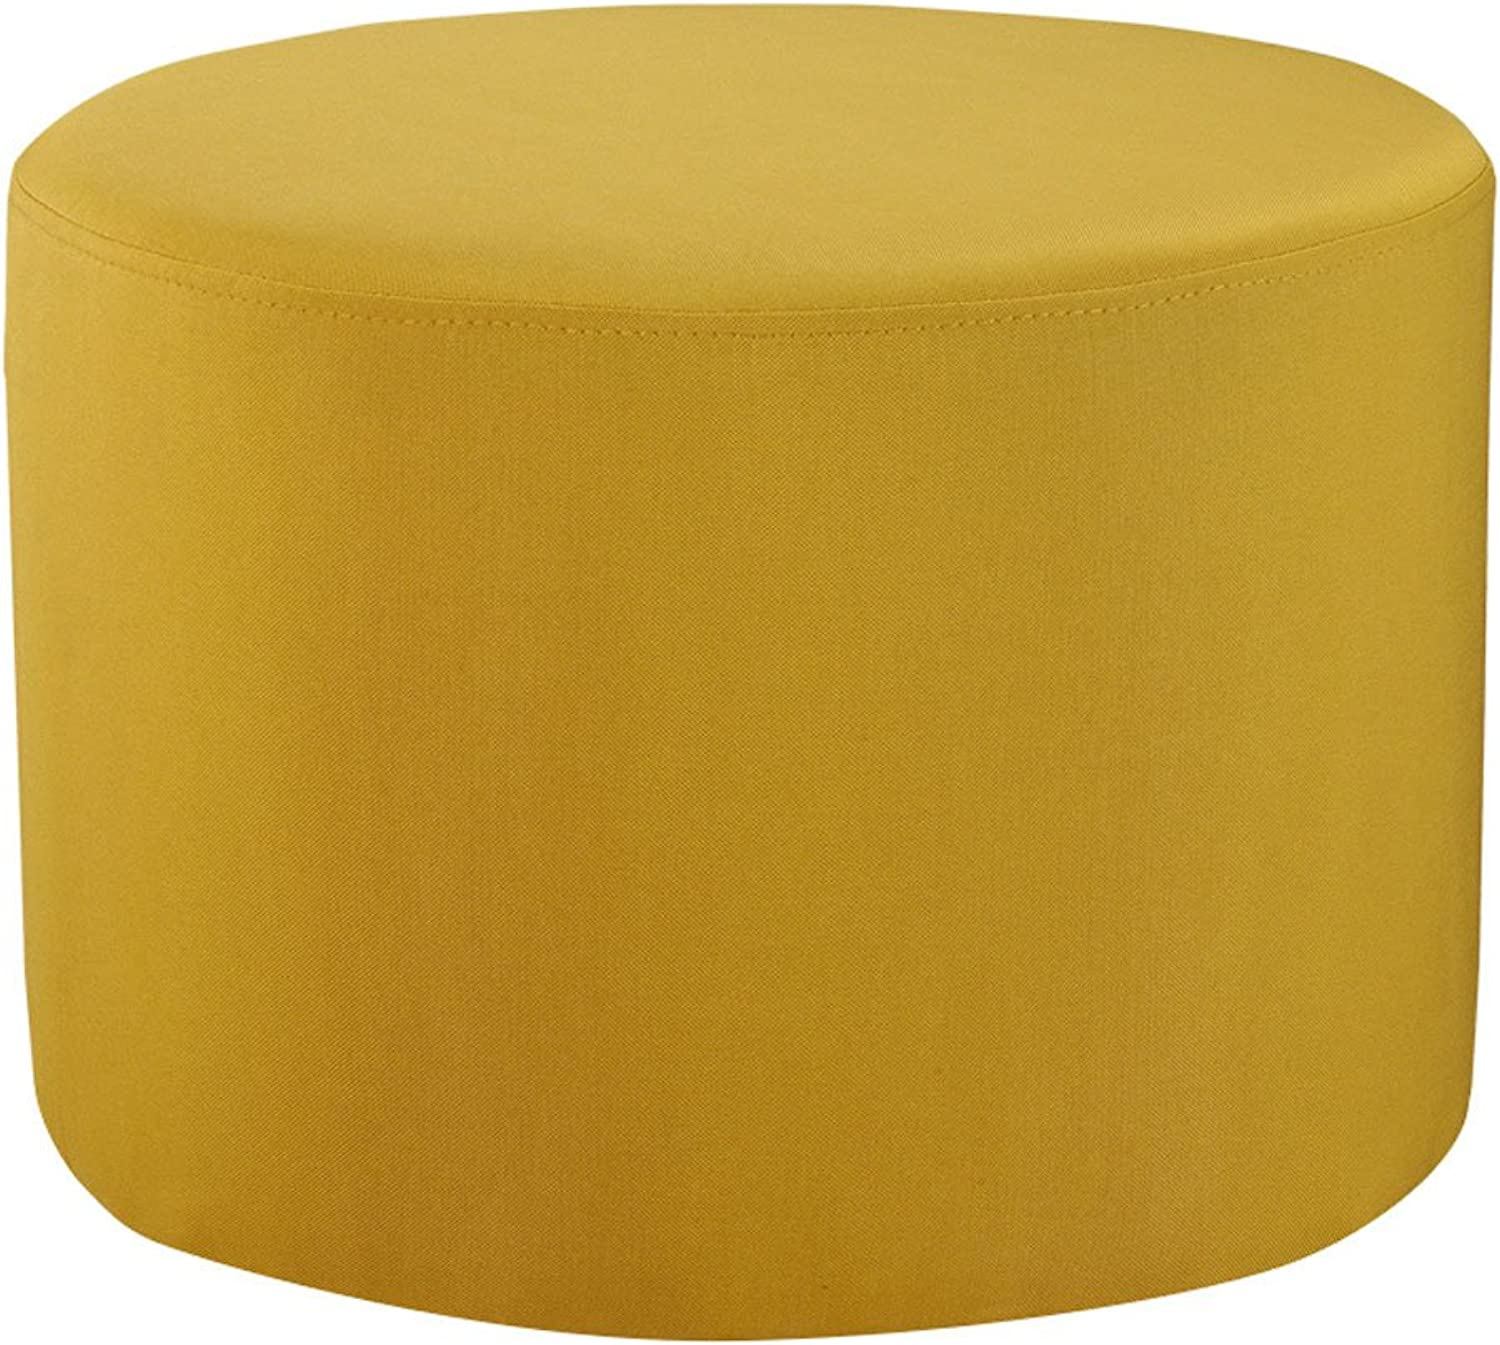 CQOZ Cloth Sofa Stool Small Sofa Stool Wear shoes shoes shoes Simple and Modern Short Stool Coffee Table 50 × 50 × 36cm Sofa Stool (color   Yellow)